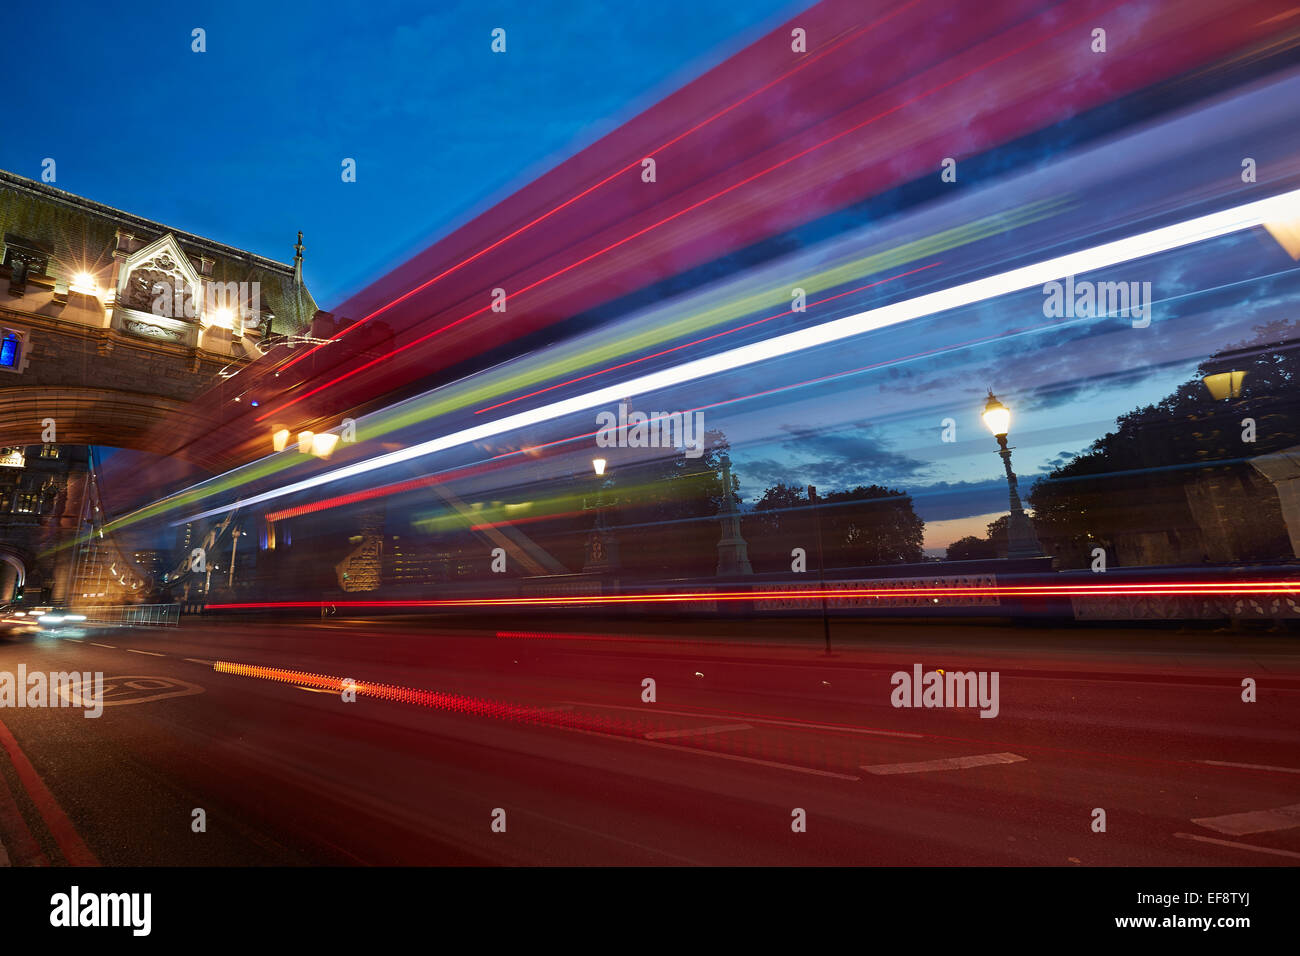 Motion blur of double-decker bus at dusk - Stock Image